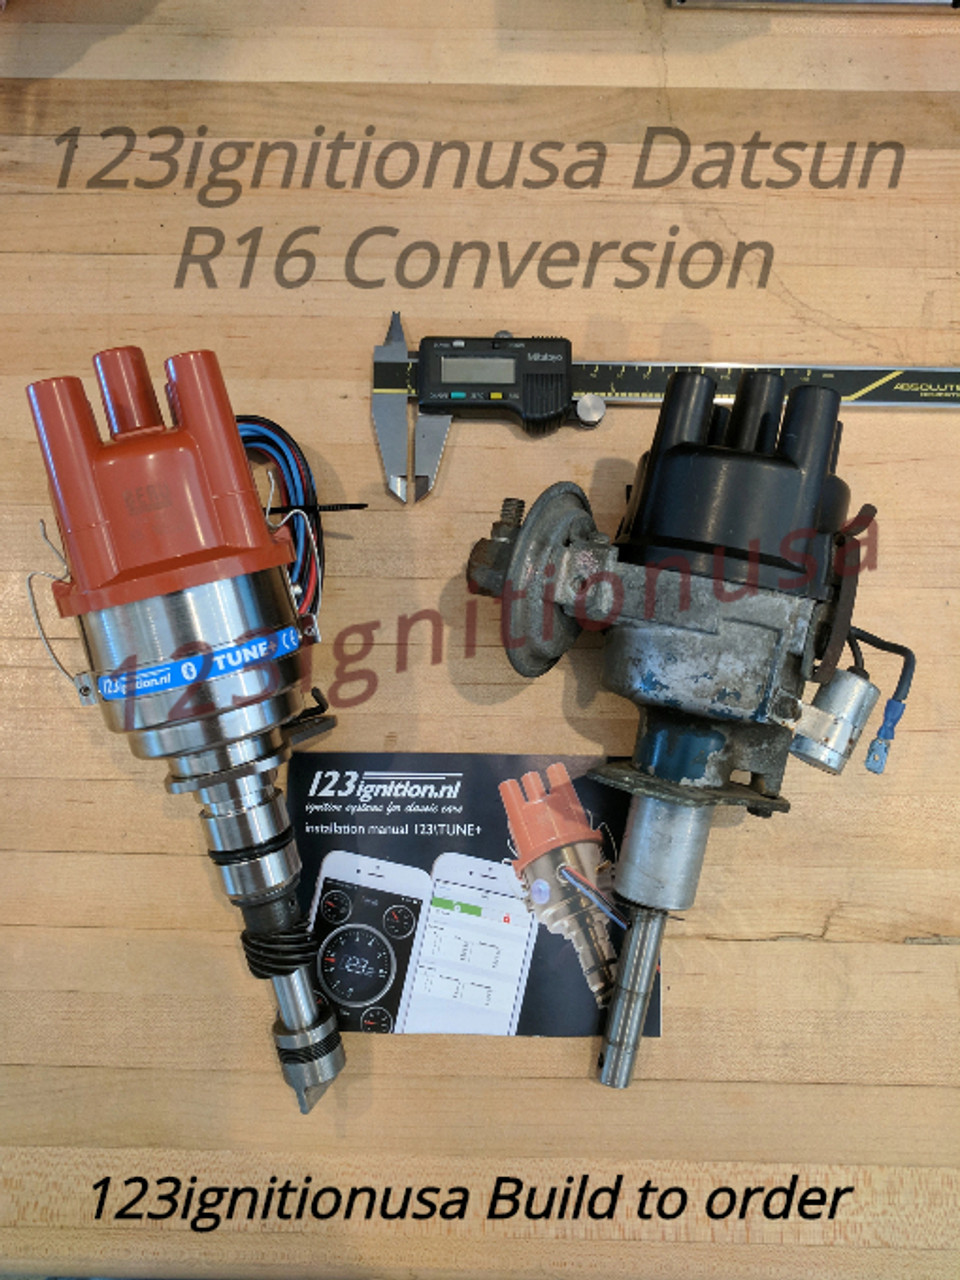 Datsun Roadster w/R16 L4  PC programmable distributor ((((( Special Order Only ))))) - No Refunds or cancellations  Fits Datsun R16 Roadster 311,411,1600,2000,411SSS,U20,H20